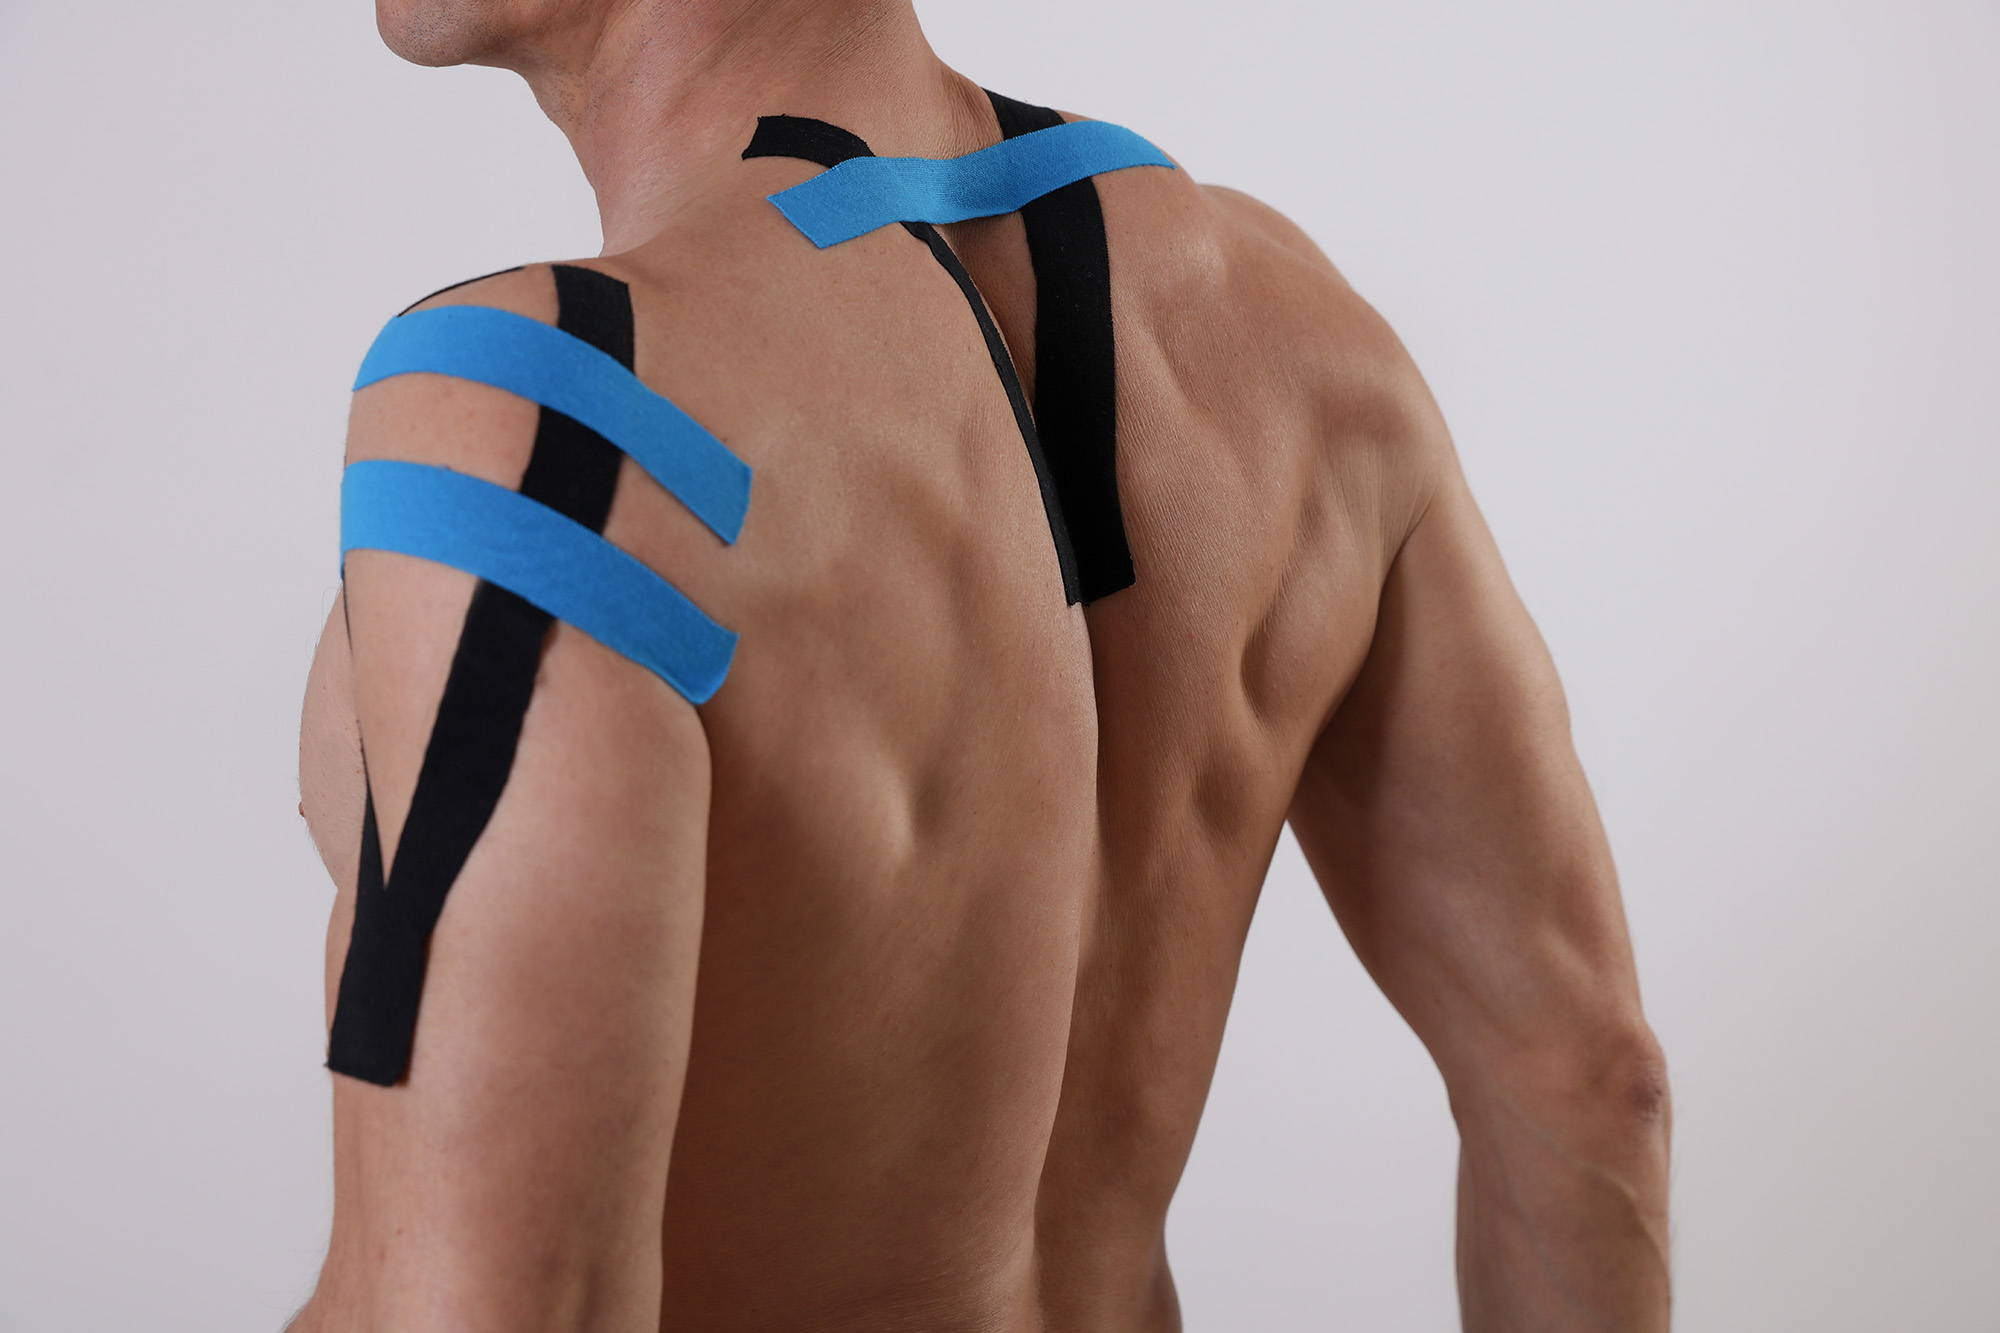 The back of a shirtless muscular man with kinesiology tape on his shoulder and back.